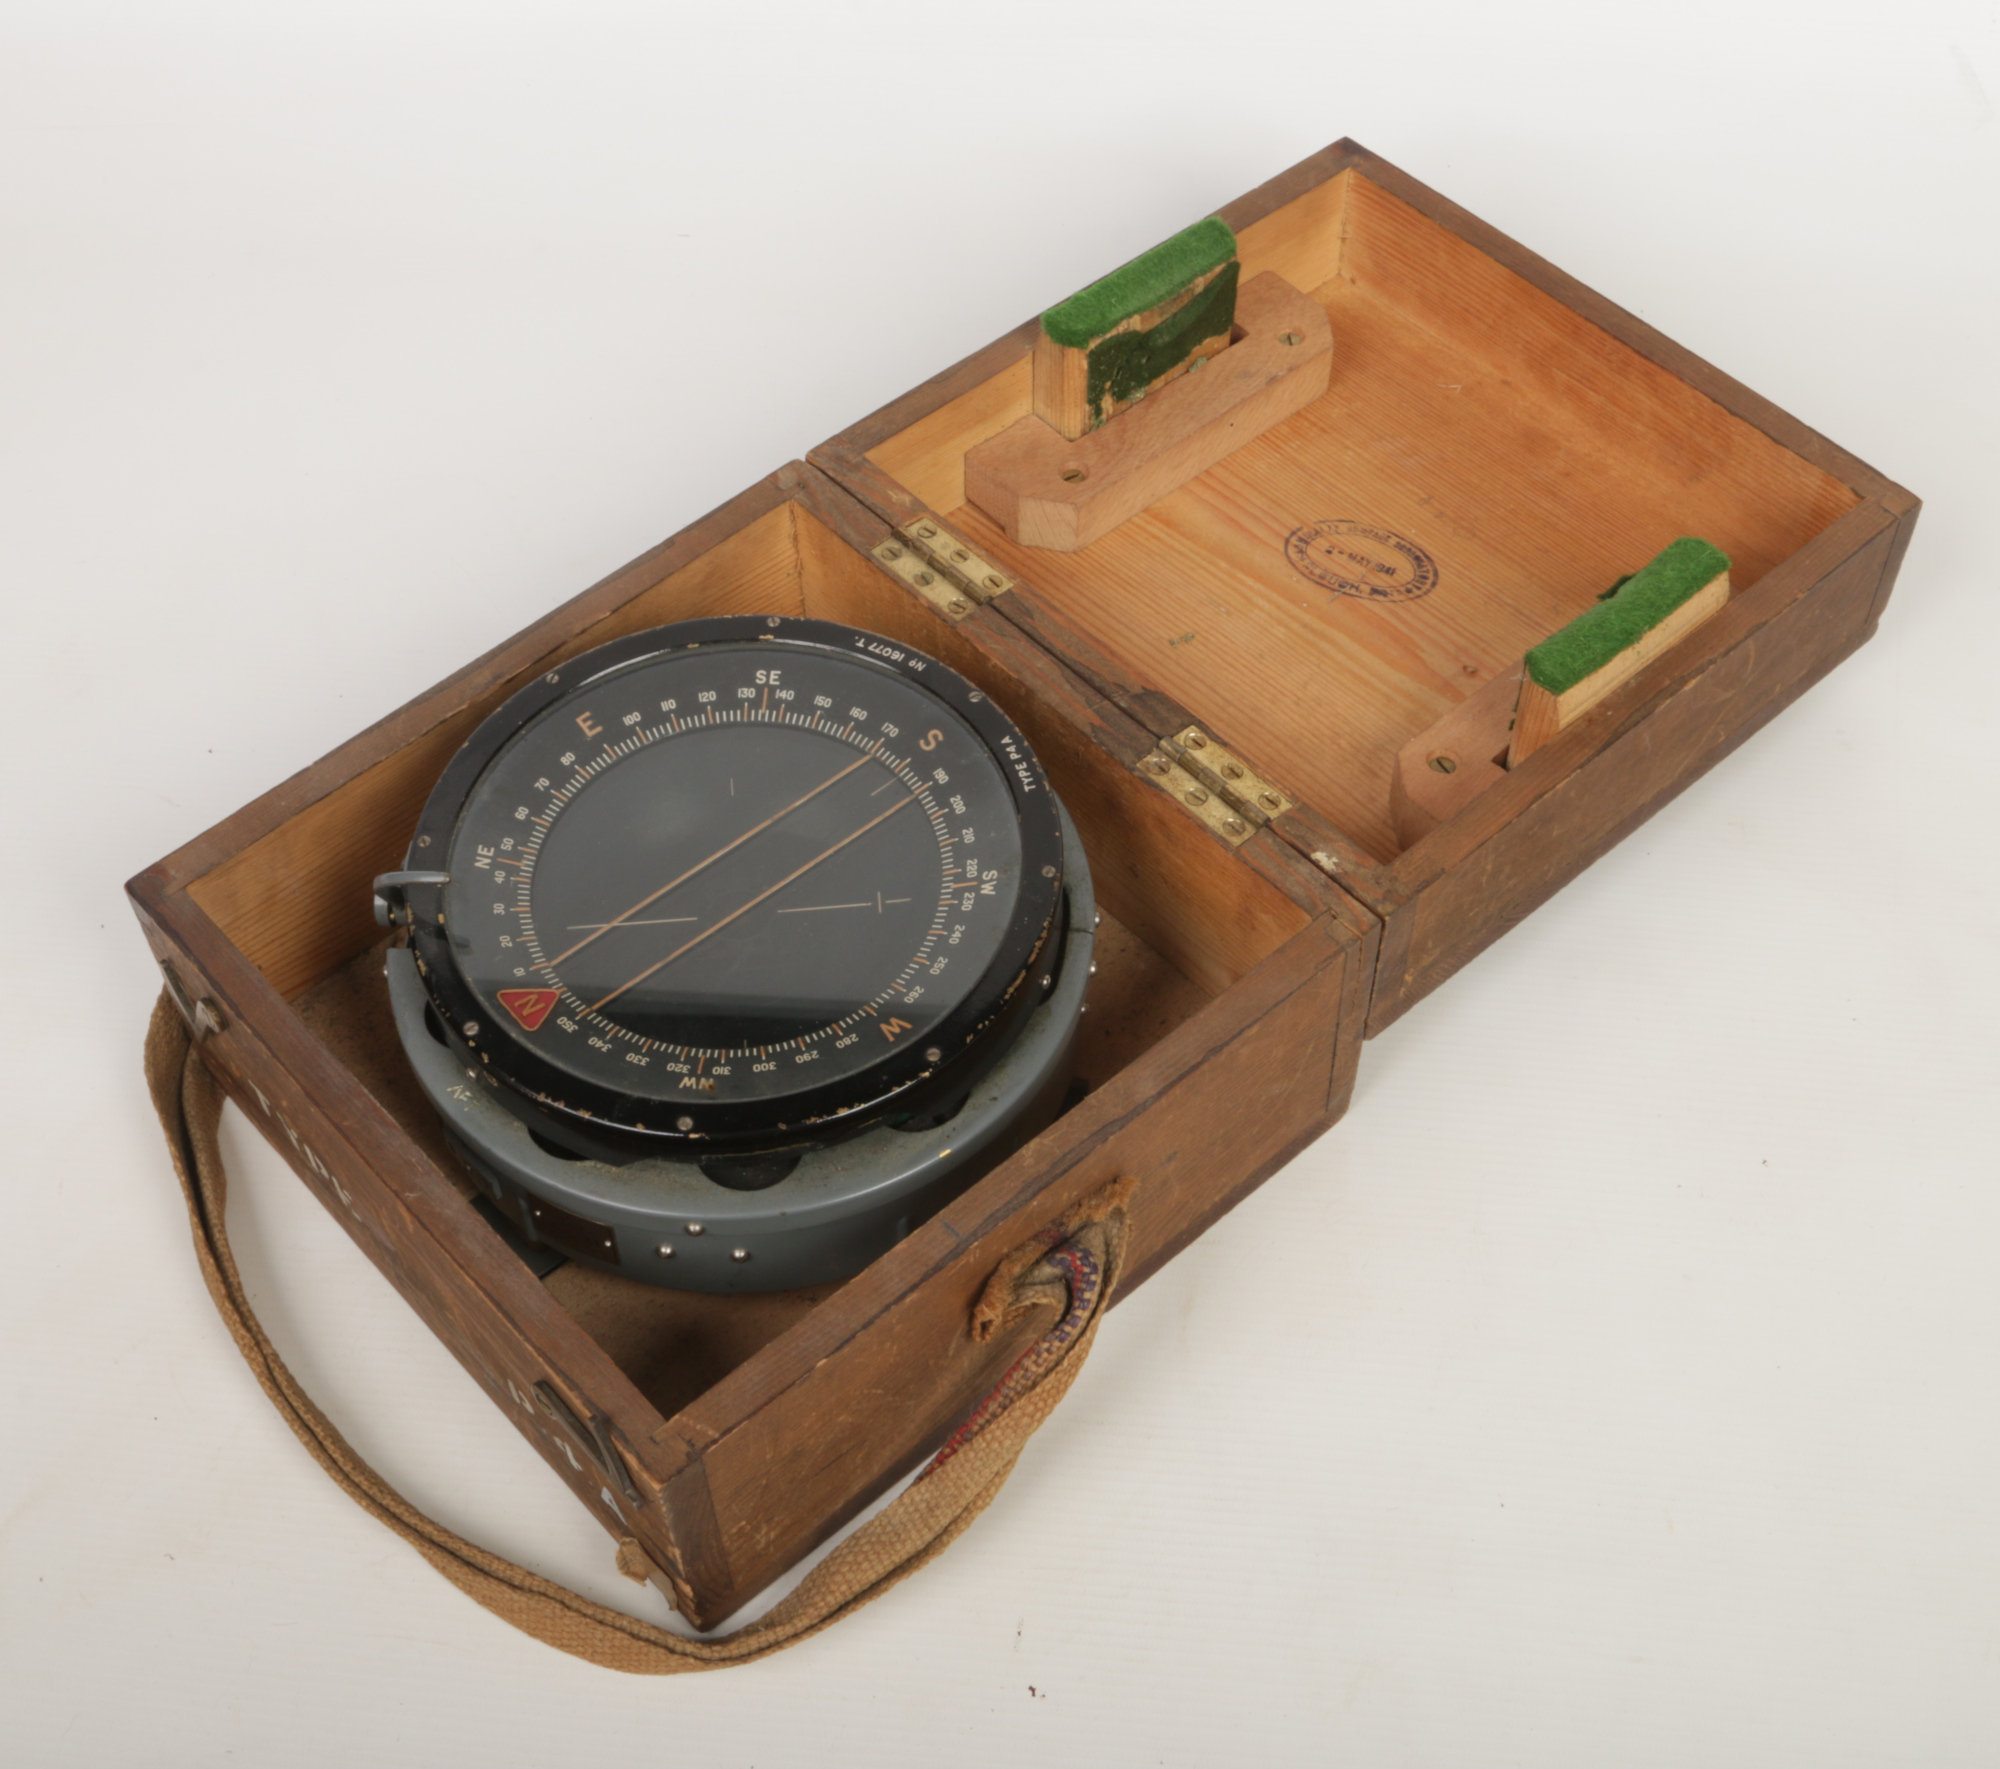 Lot 256 - A World War II RAF P4A aircraft compass in original wooden case. Inspection stamp dated 2-May